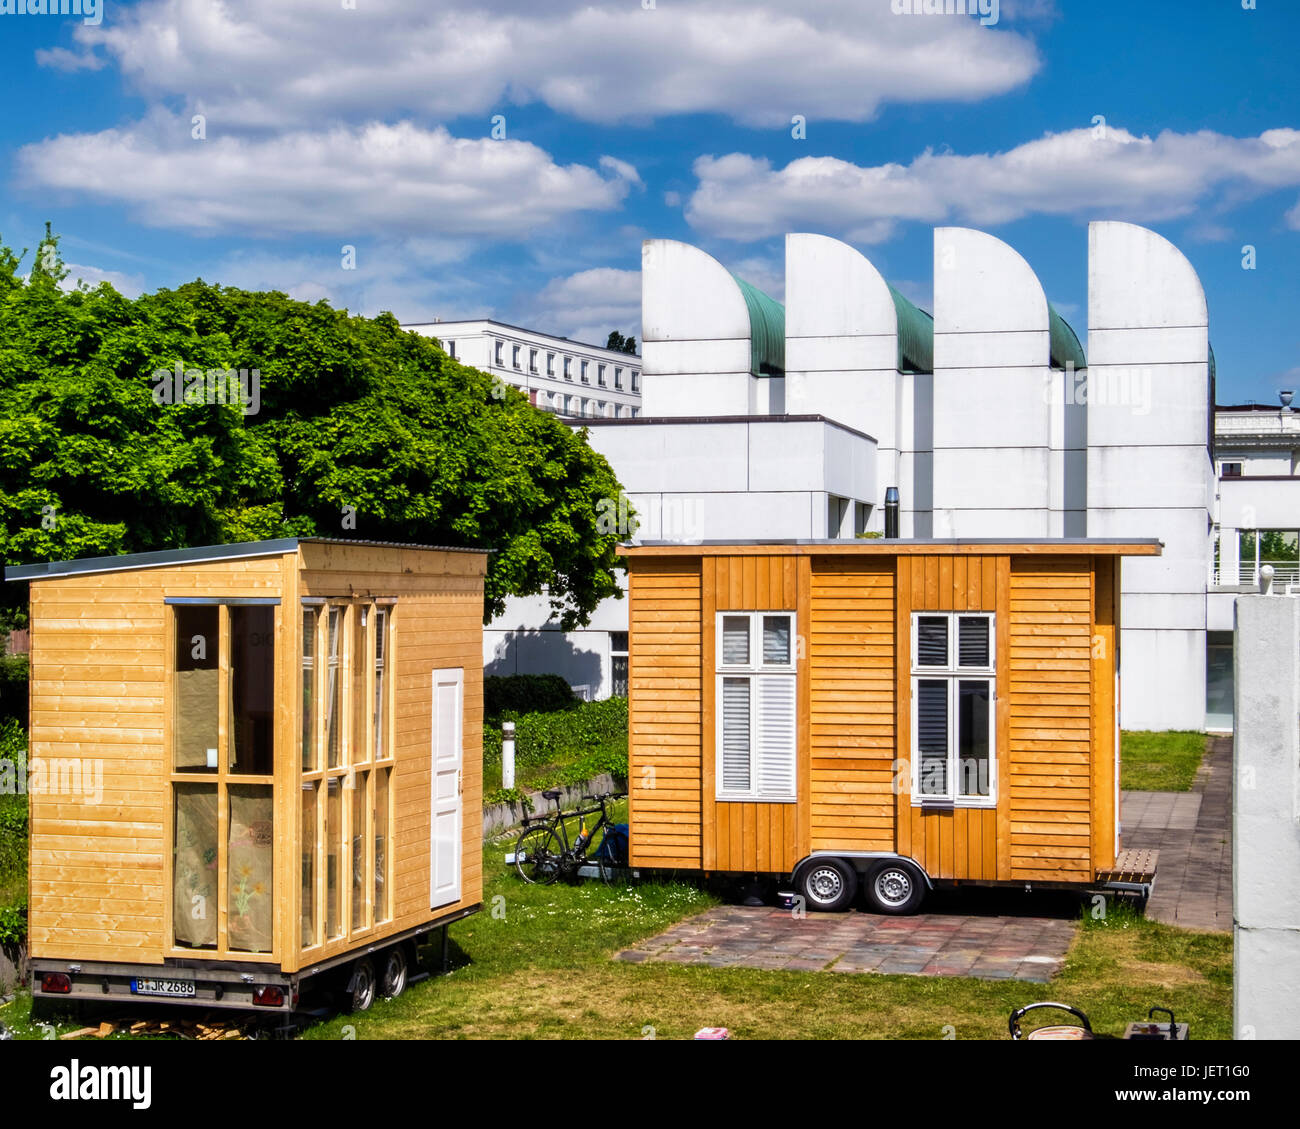 Berlin-Tiergarten,Bauhaus archives campus. Tinyhouse University project, 20 Tiny mobile houses, 10 Square meters - Stock Image